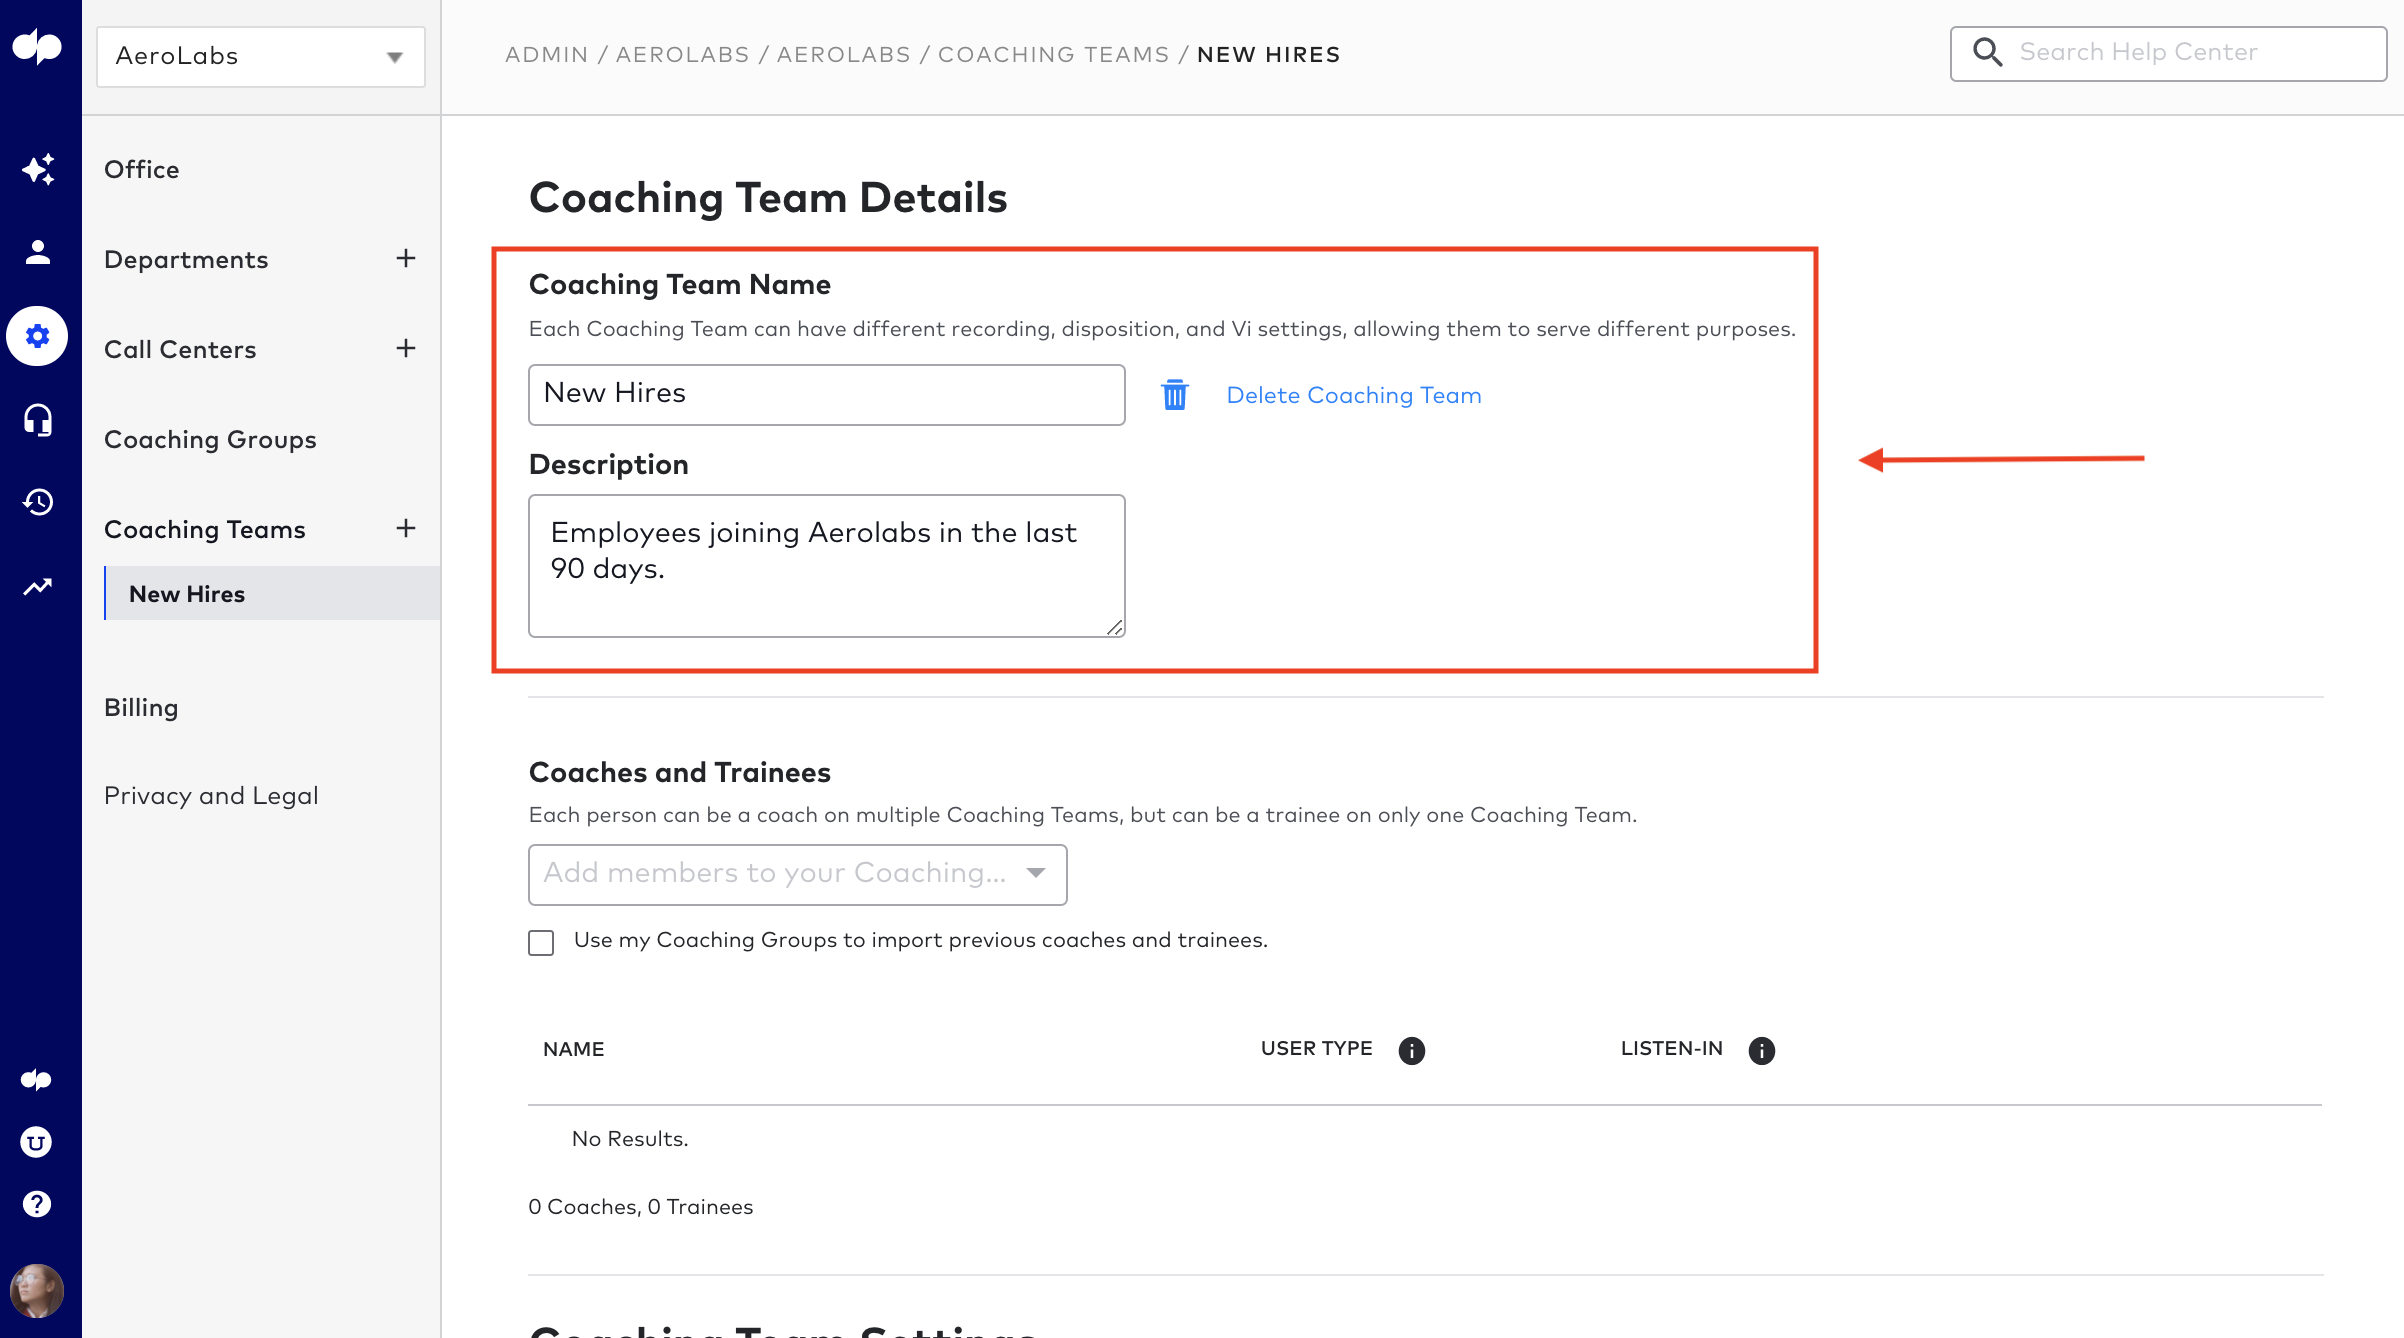 dp-coaching-teams-name-description.png